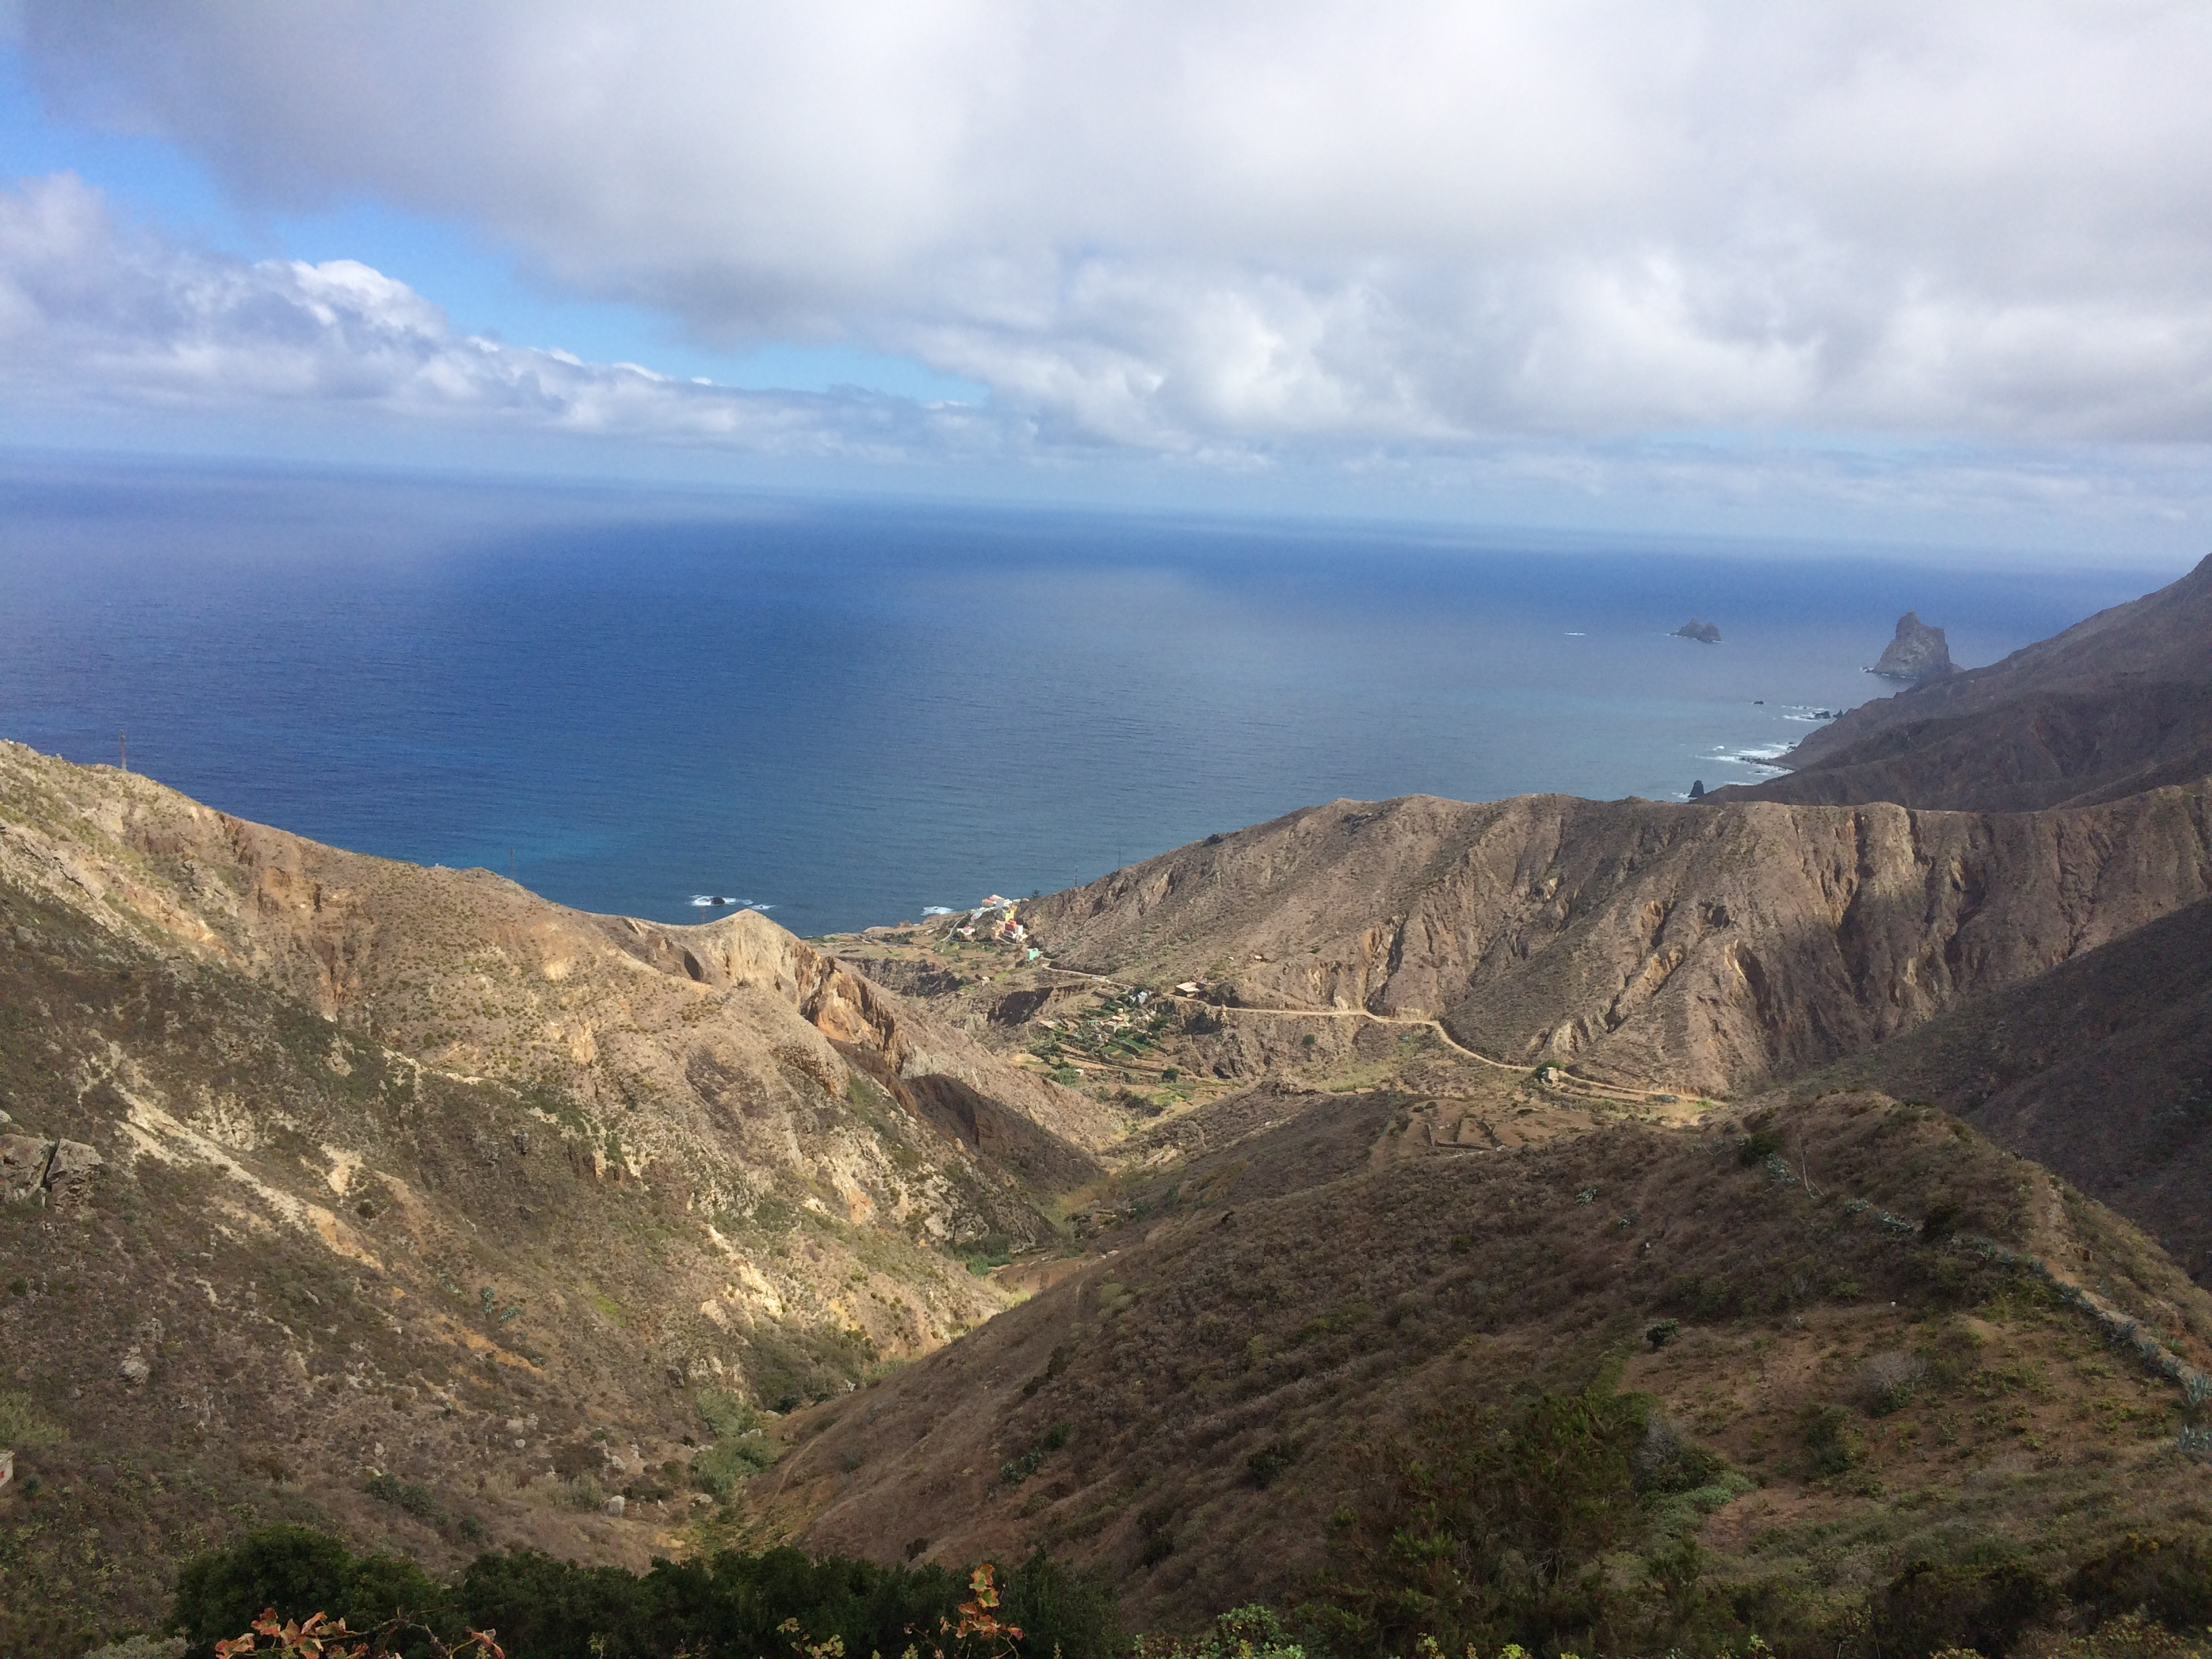 North of the Tenerife